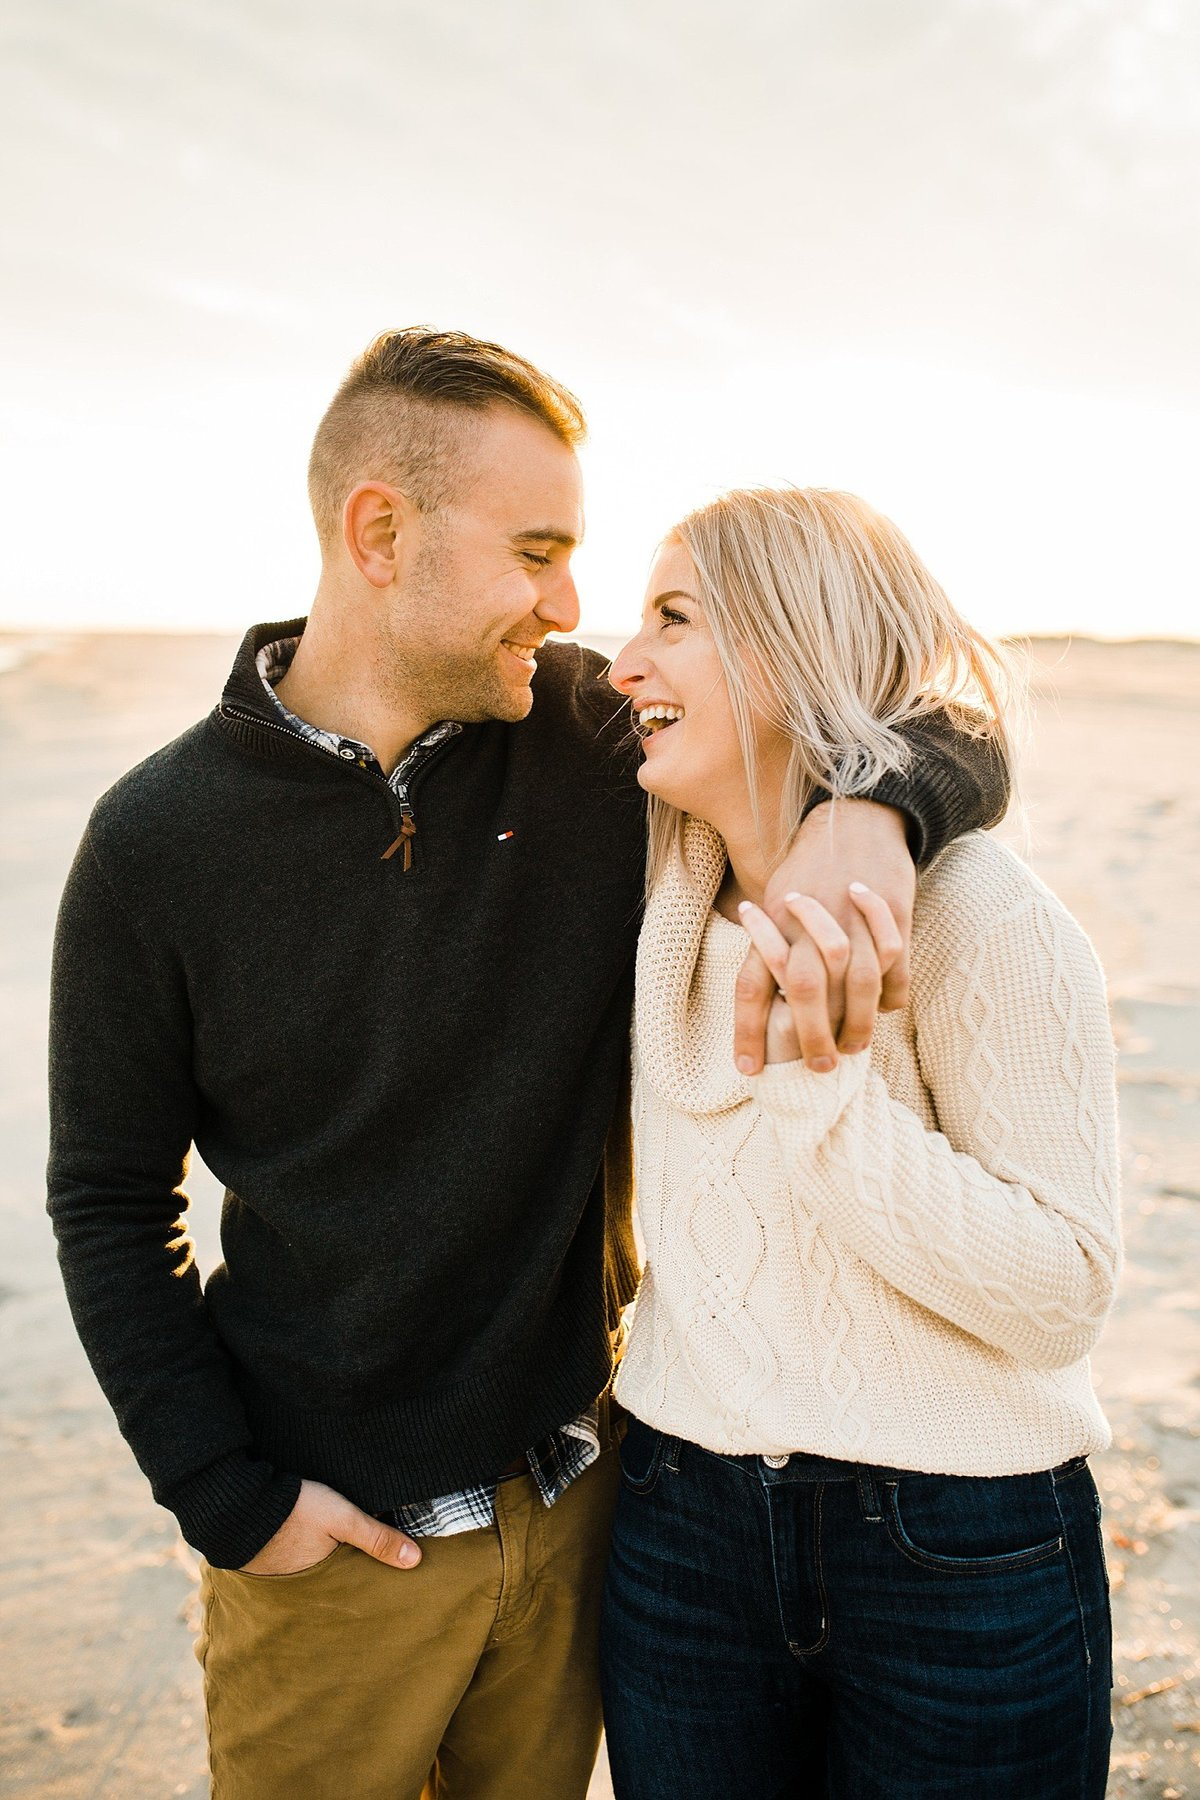 sunset-lbi-engagement-session-new-jersey-rebecca-renner-photography_0006